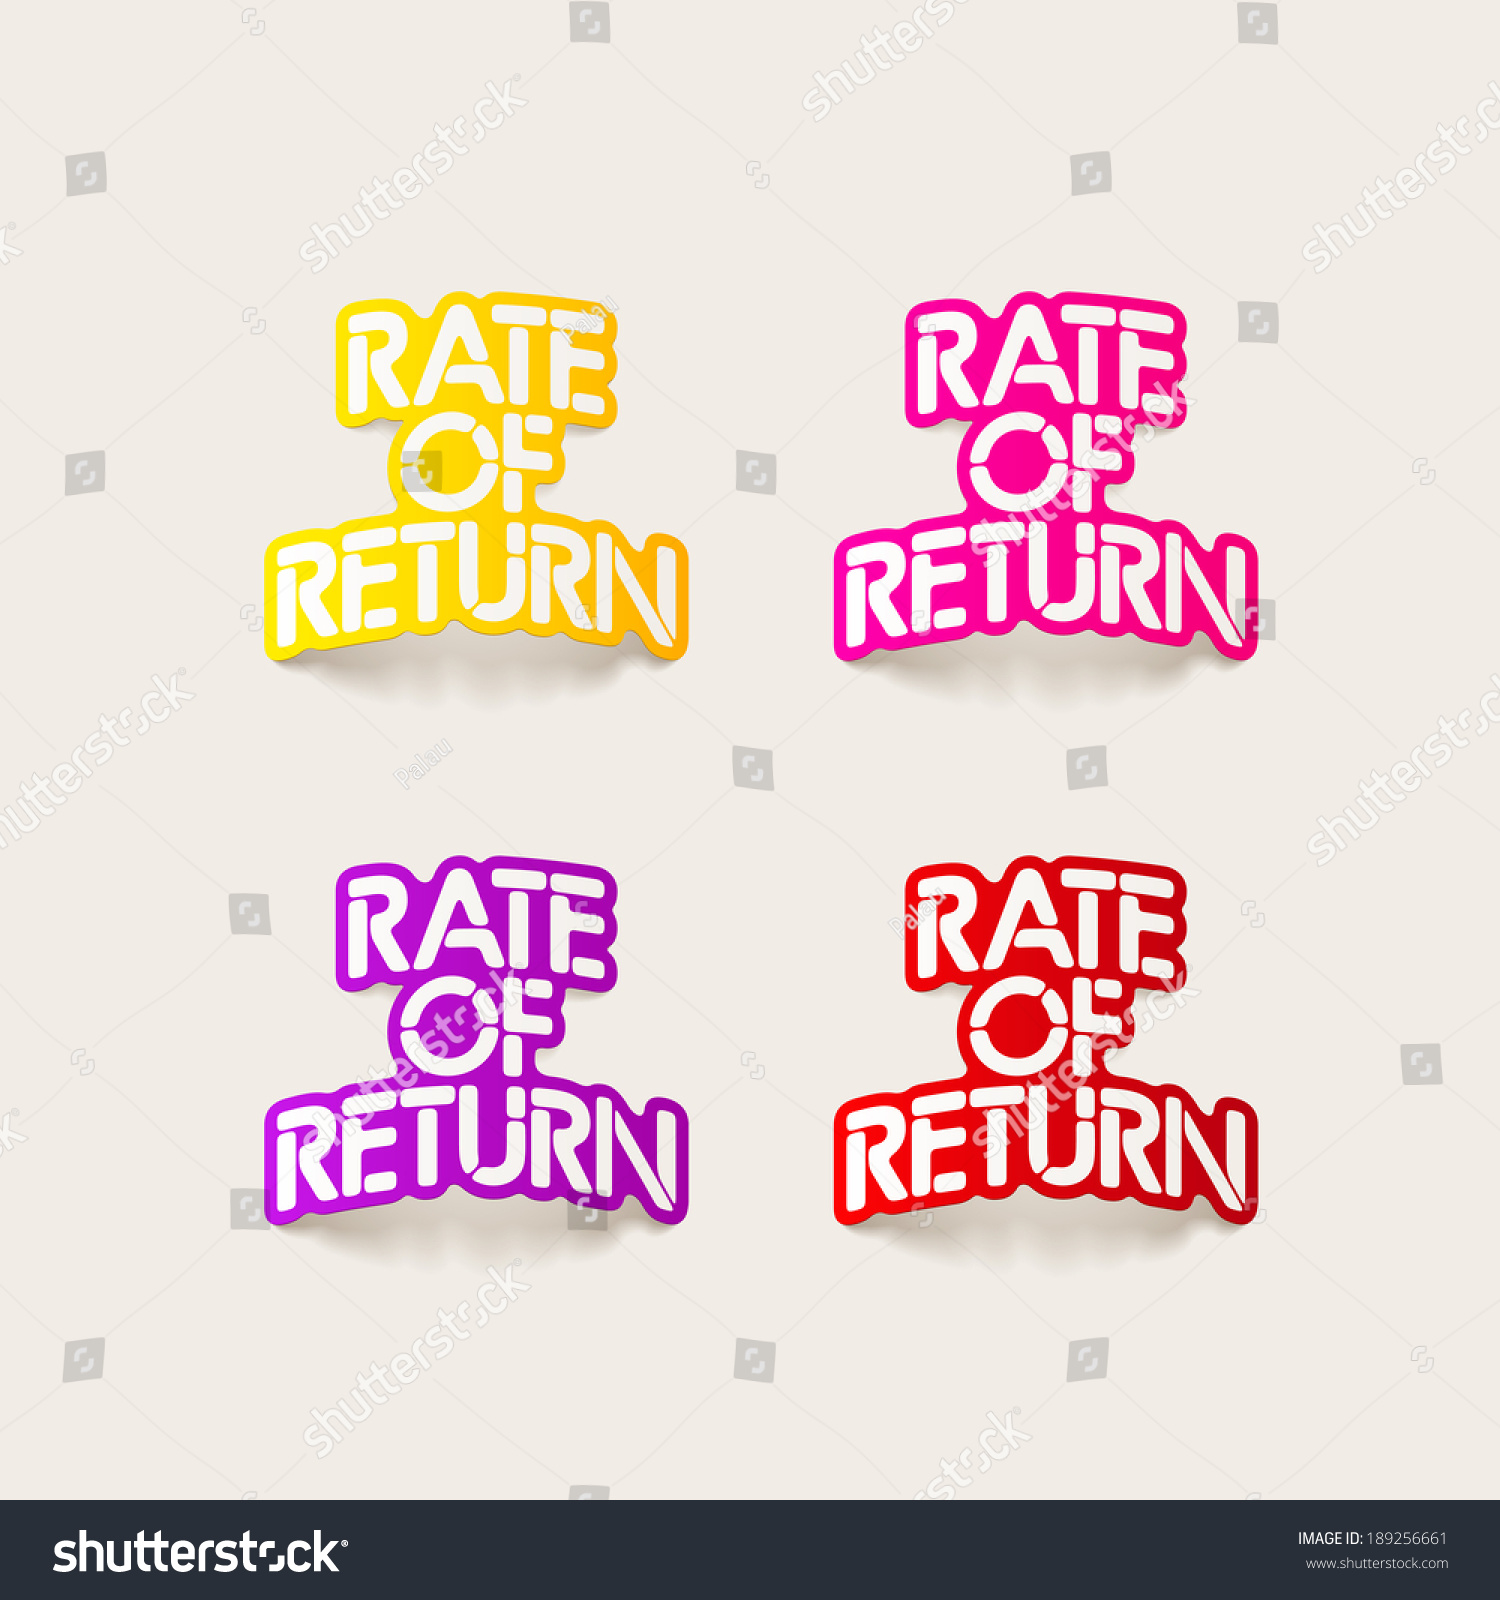 how to find rate of return of a stock